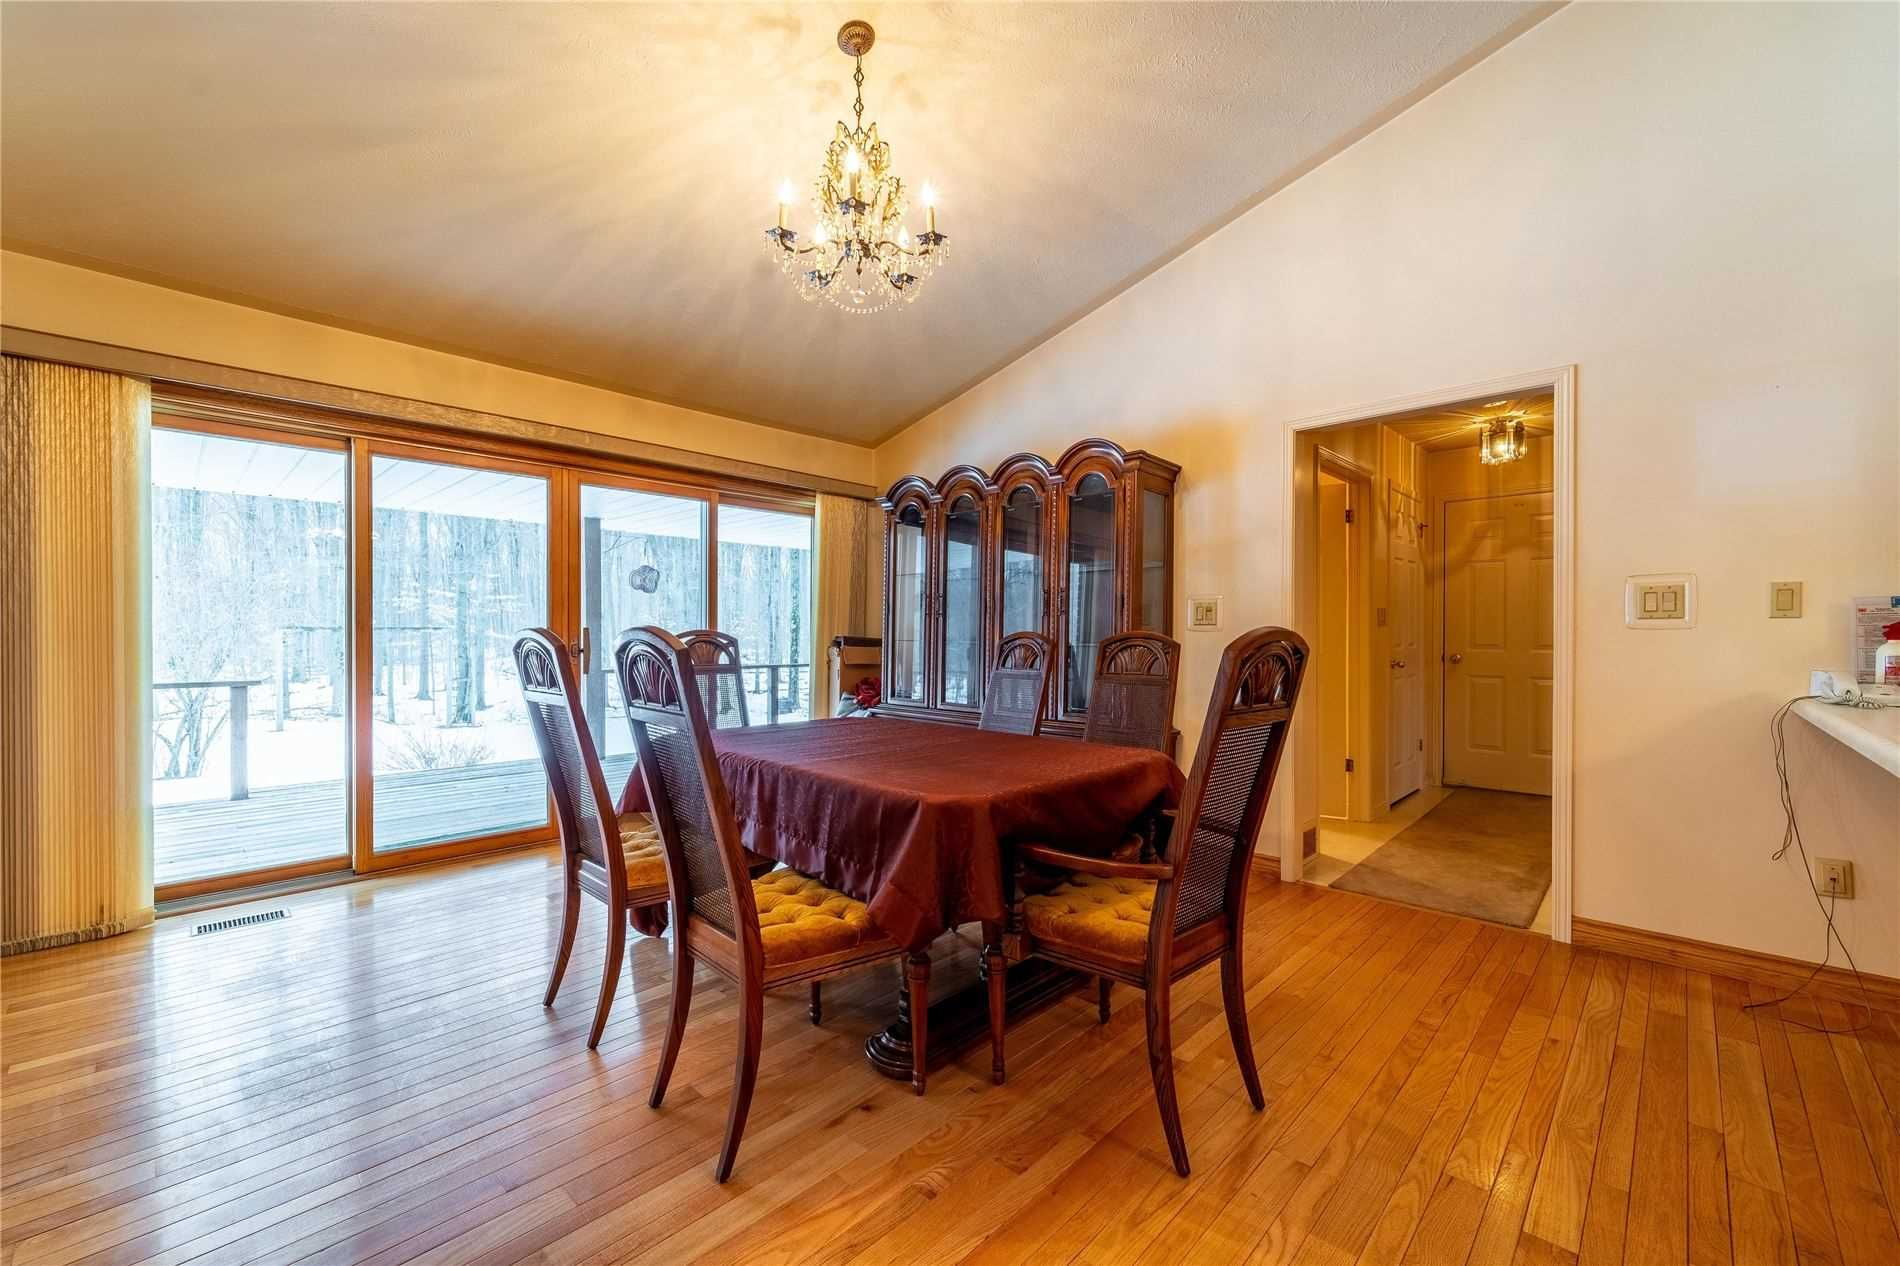 Photo 8: Photos: 918 Windham12 Road in Norfolk: Simcoe House (Bungalow) for sale : MLS®# X4707719